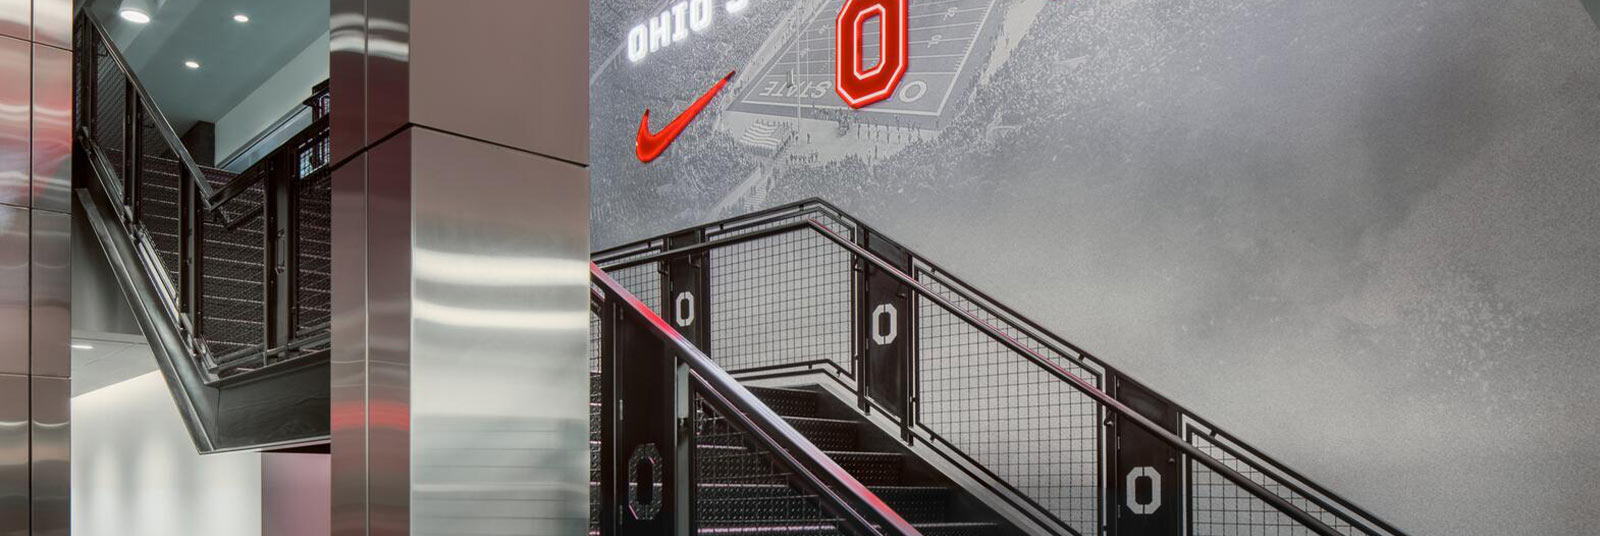 Monumental staircase at the renovated Woody Hayes Athletic Center at The Ohio State University.